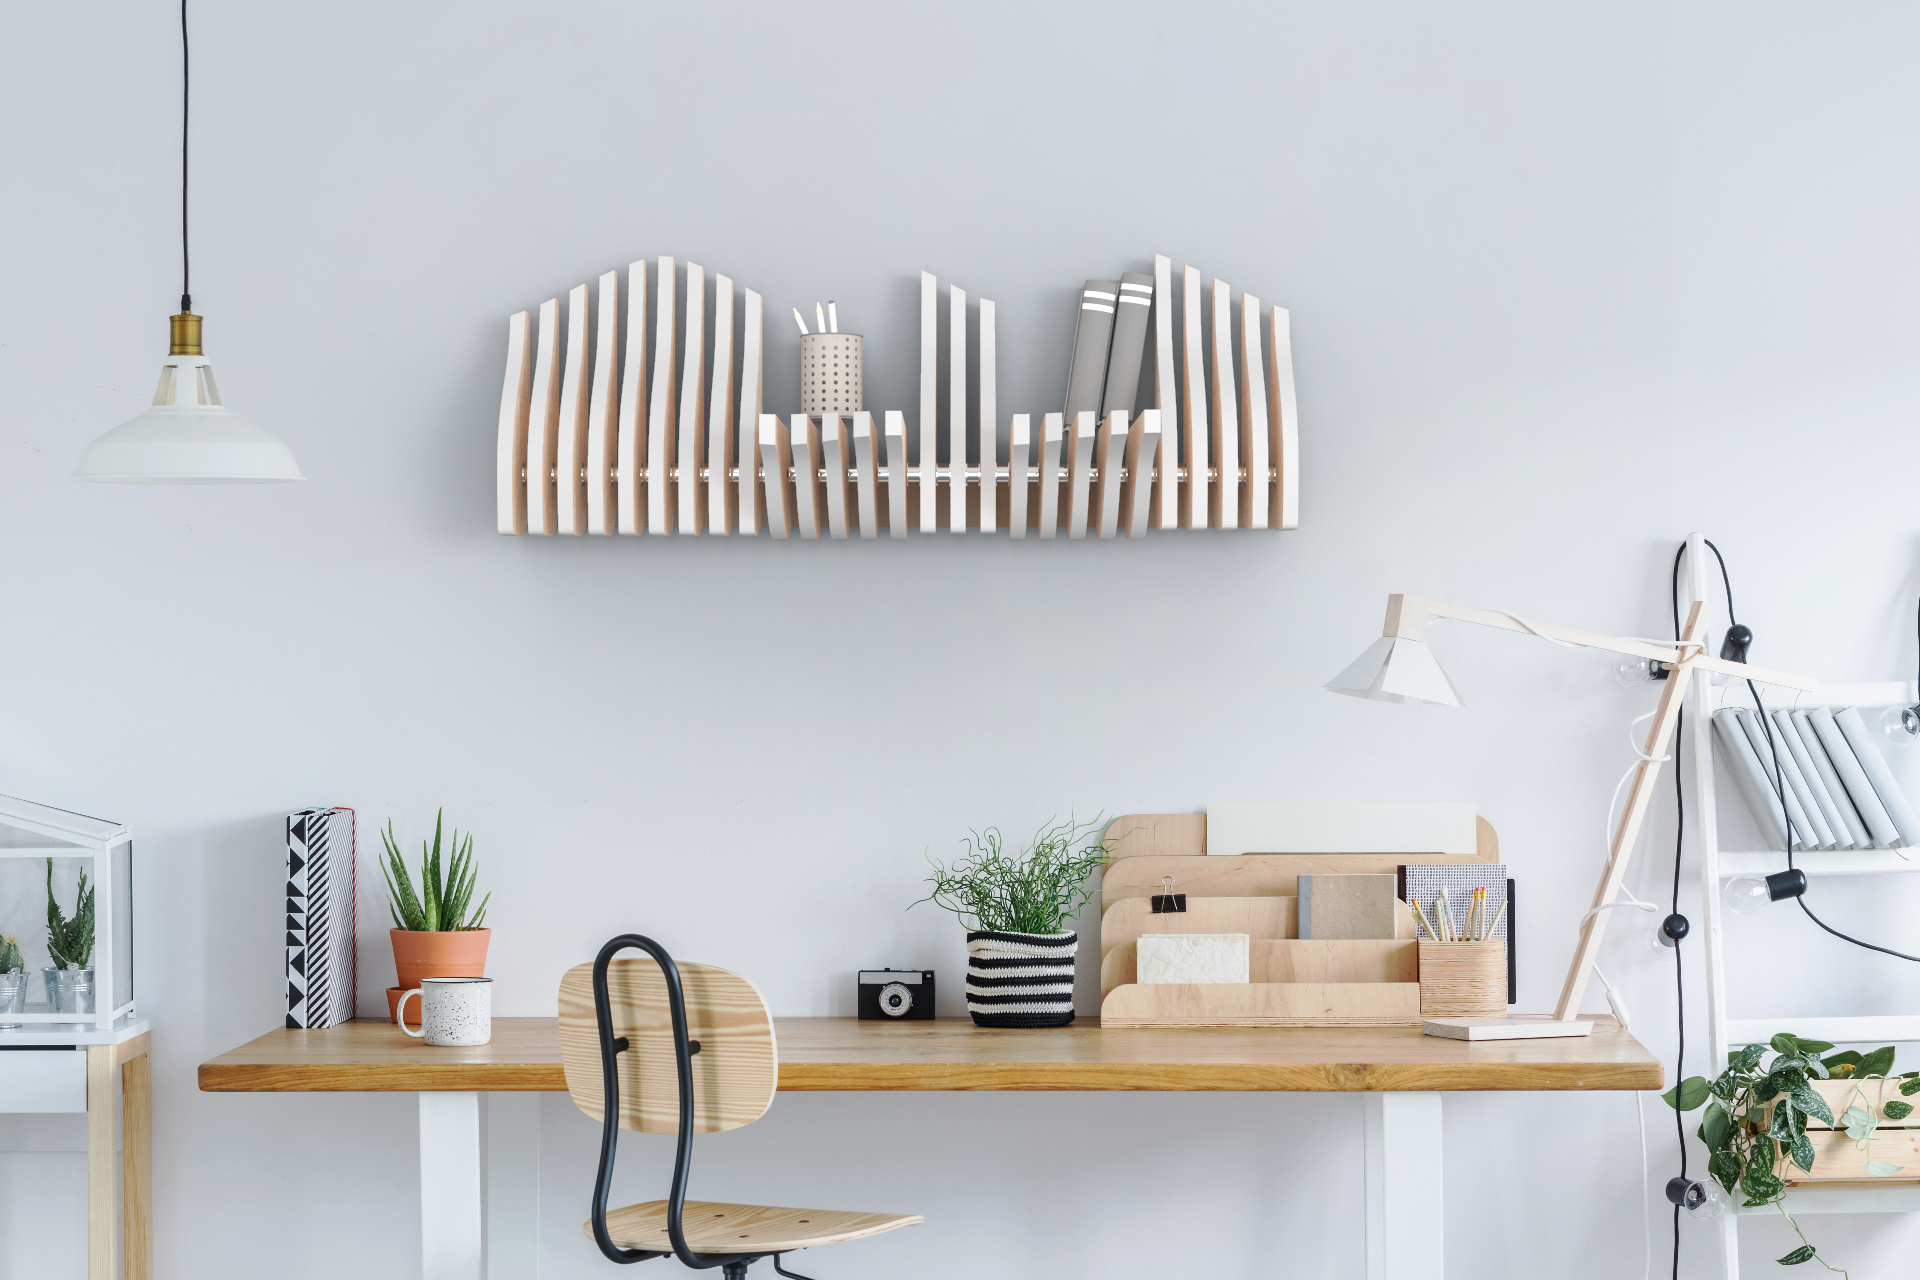 Köllen Bookshelf One. This piece of furniture will be breathe new life into your home.